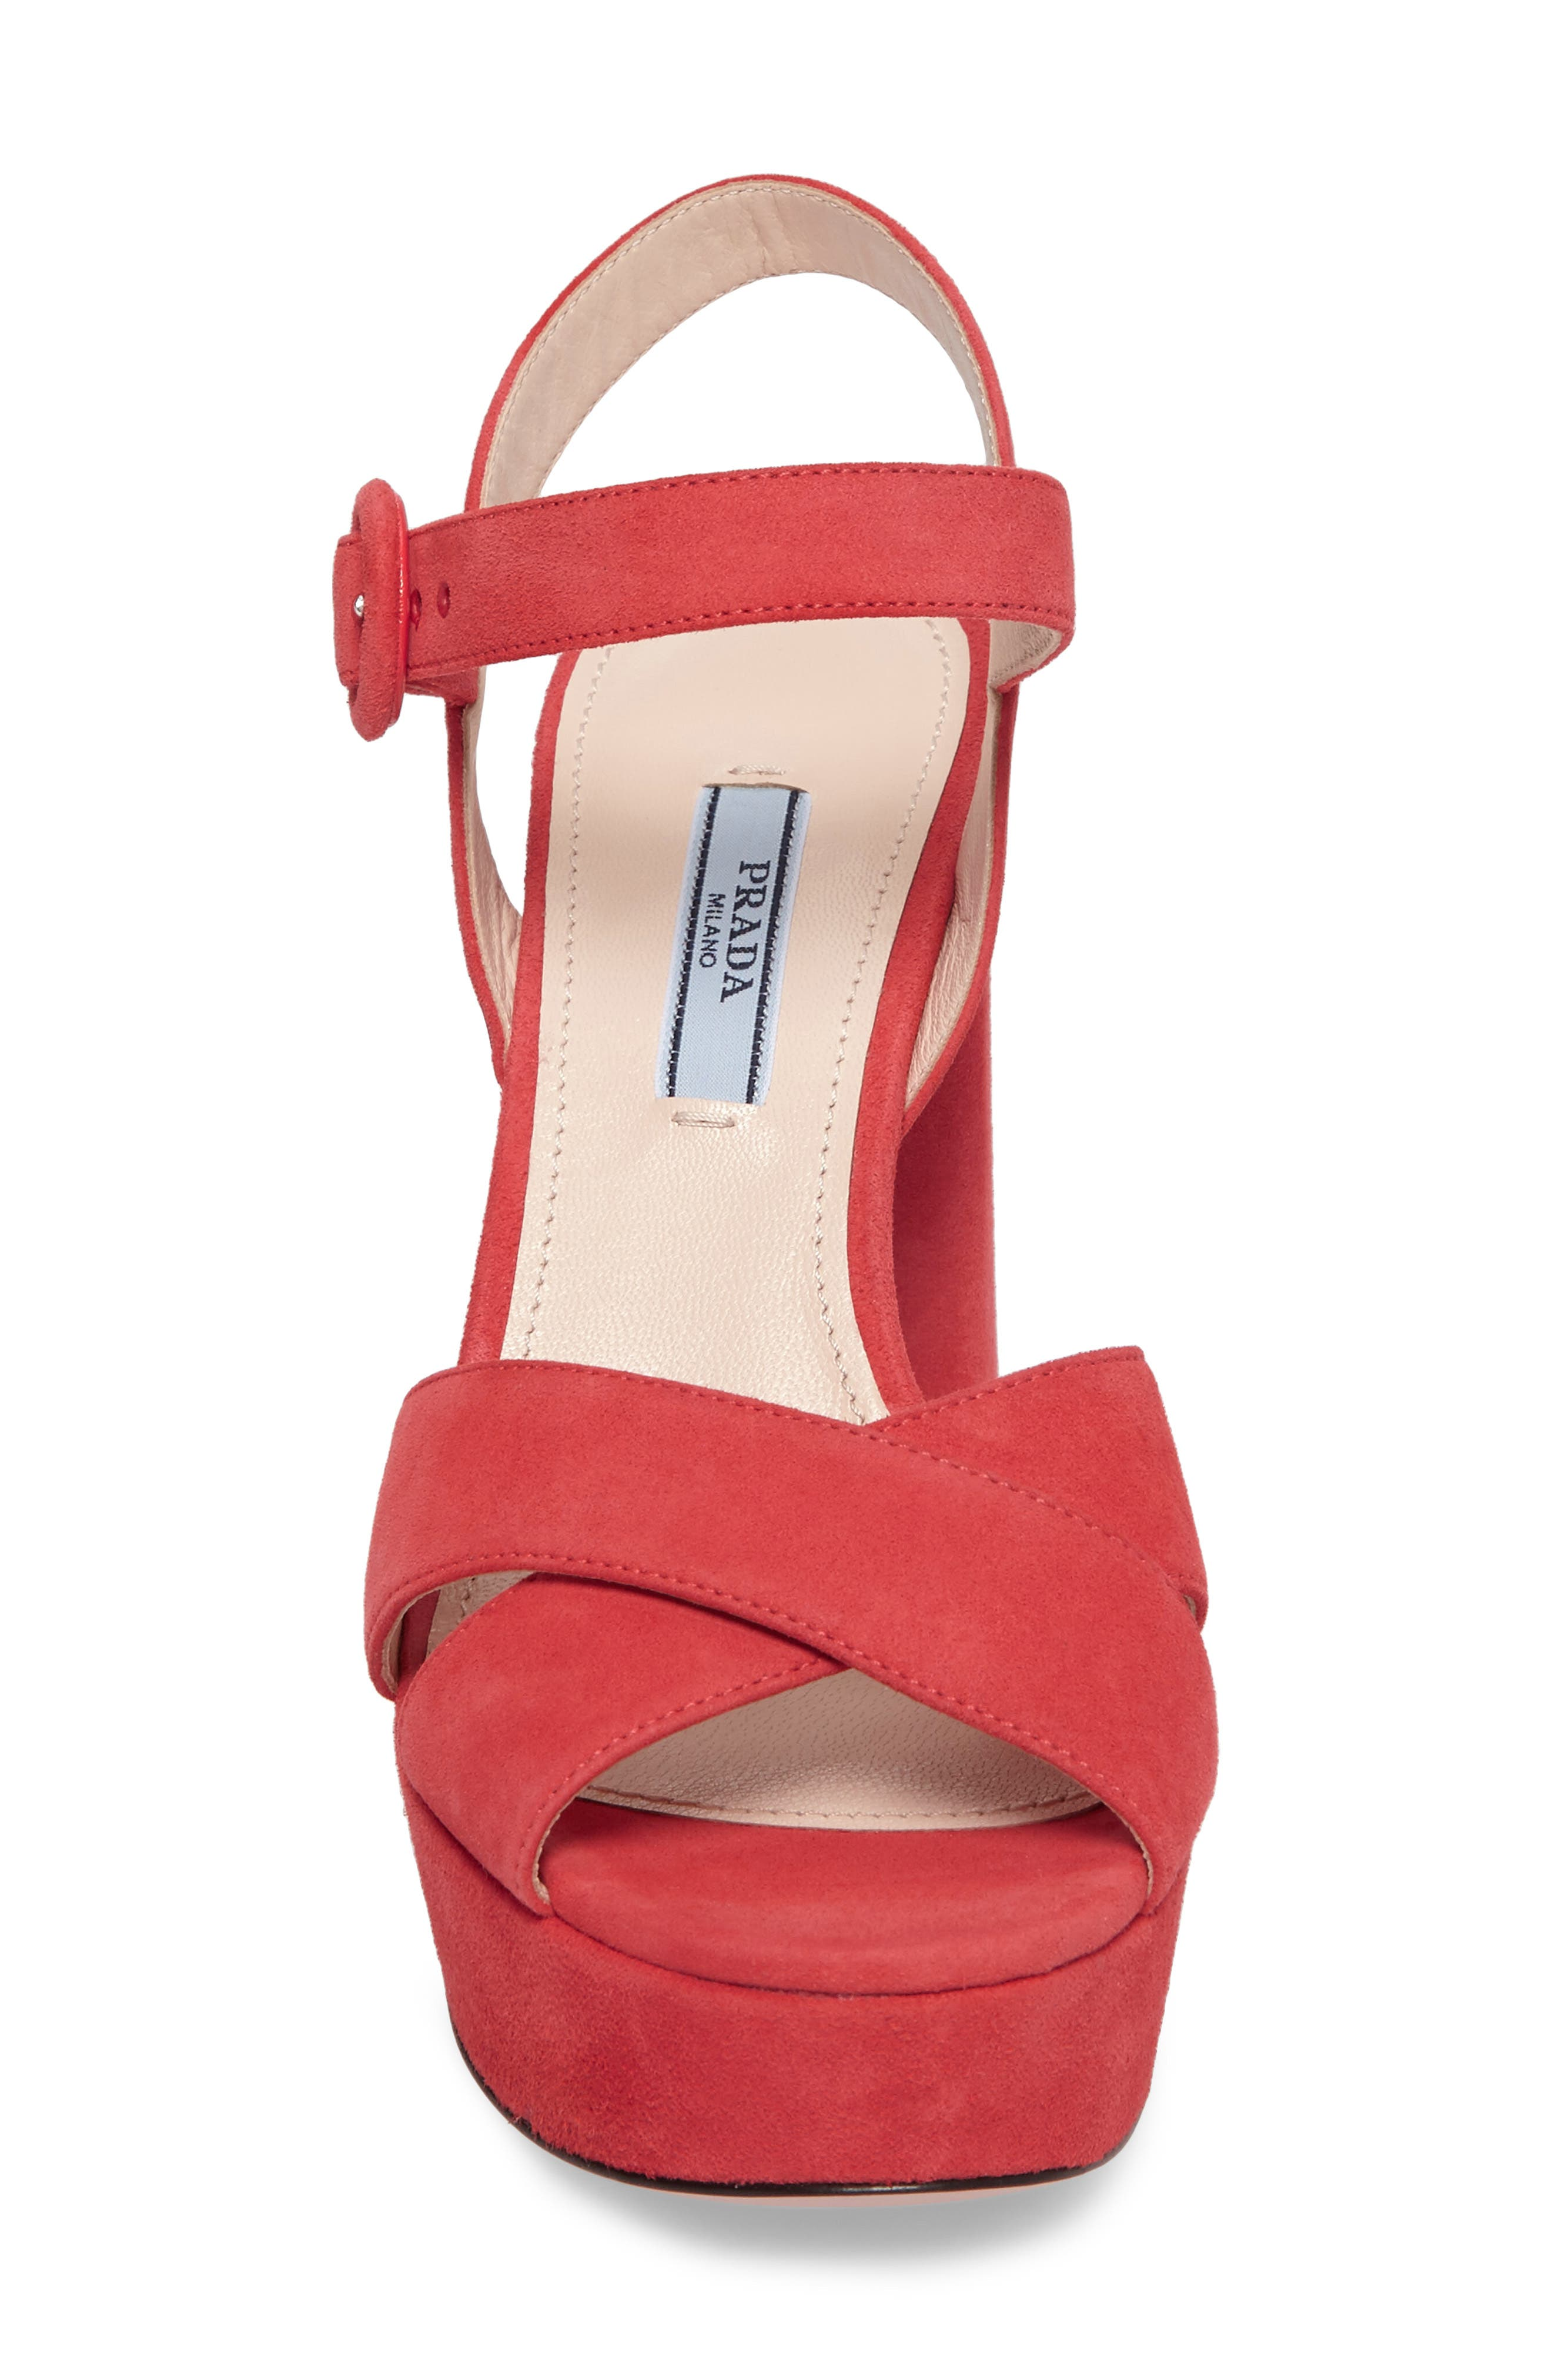 Block Heel Platform Sandal,                             Alternate thumbnail 4, color,                             Corallo